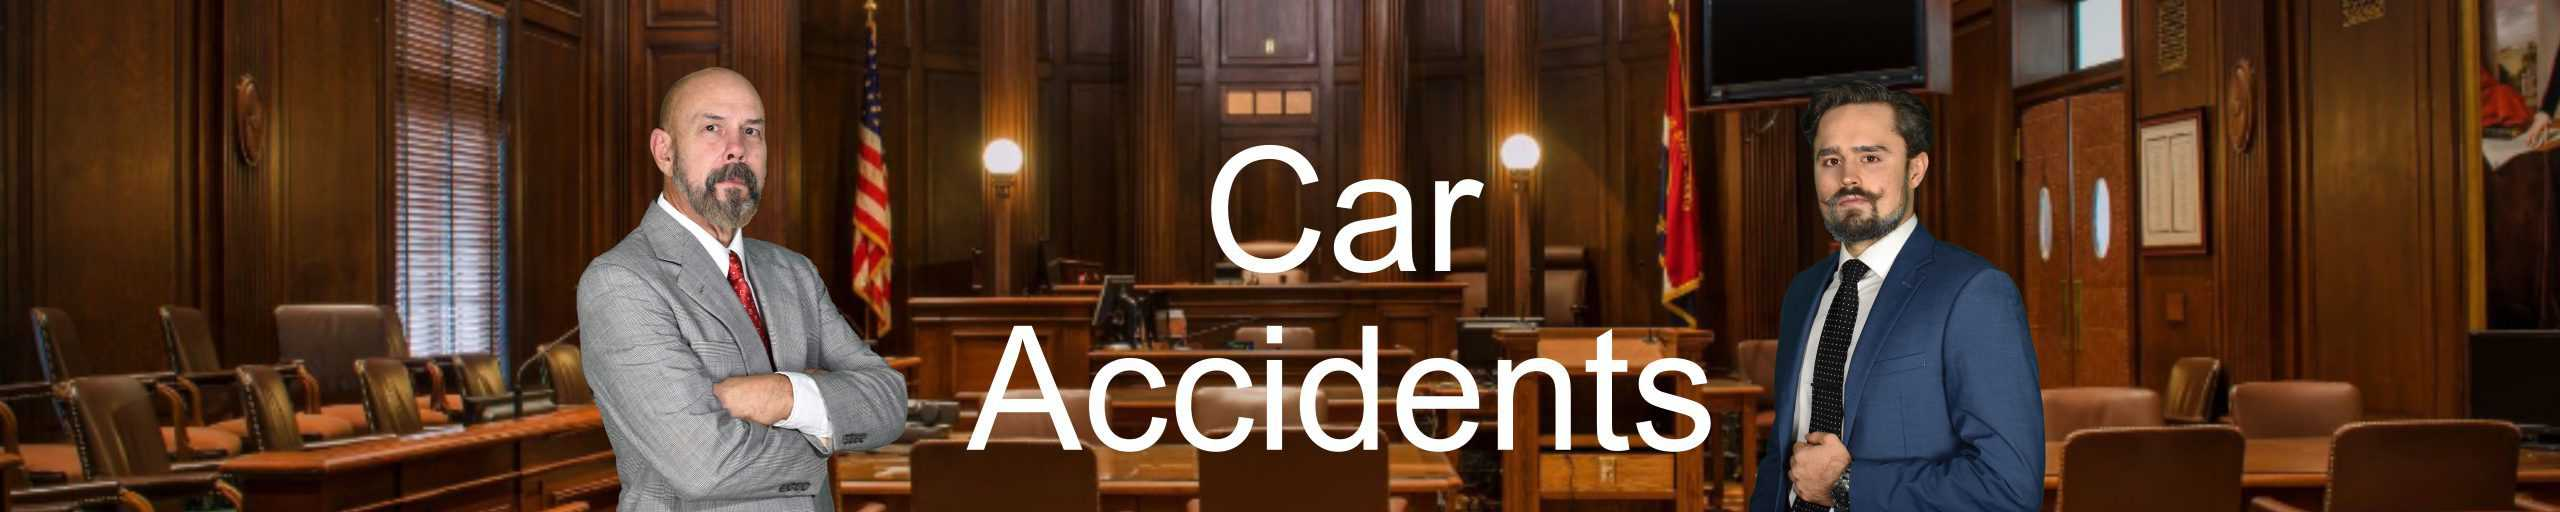 Car-Accidents-Personal-Injury-Attorney-Lawyer-Hurt-Broken-Rear-End-Money-Settlement-Hospital-ER-Damage-Insurance-Company